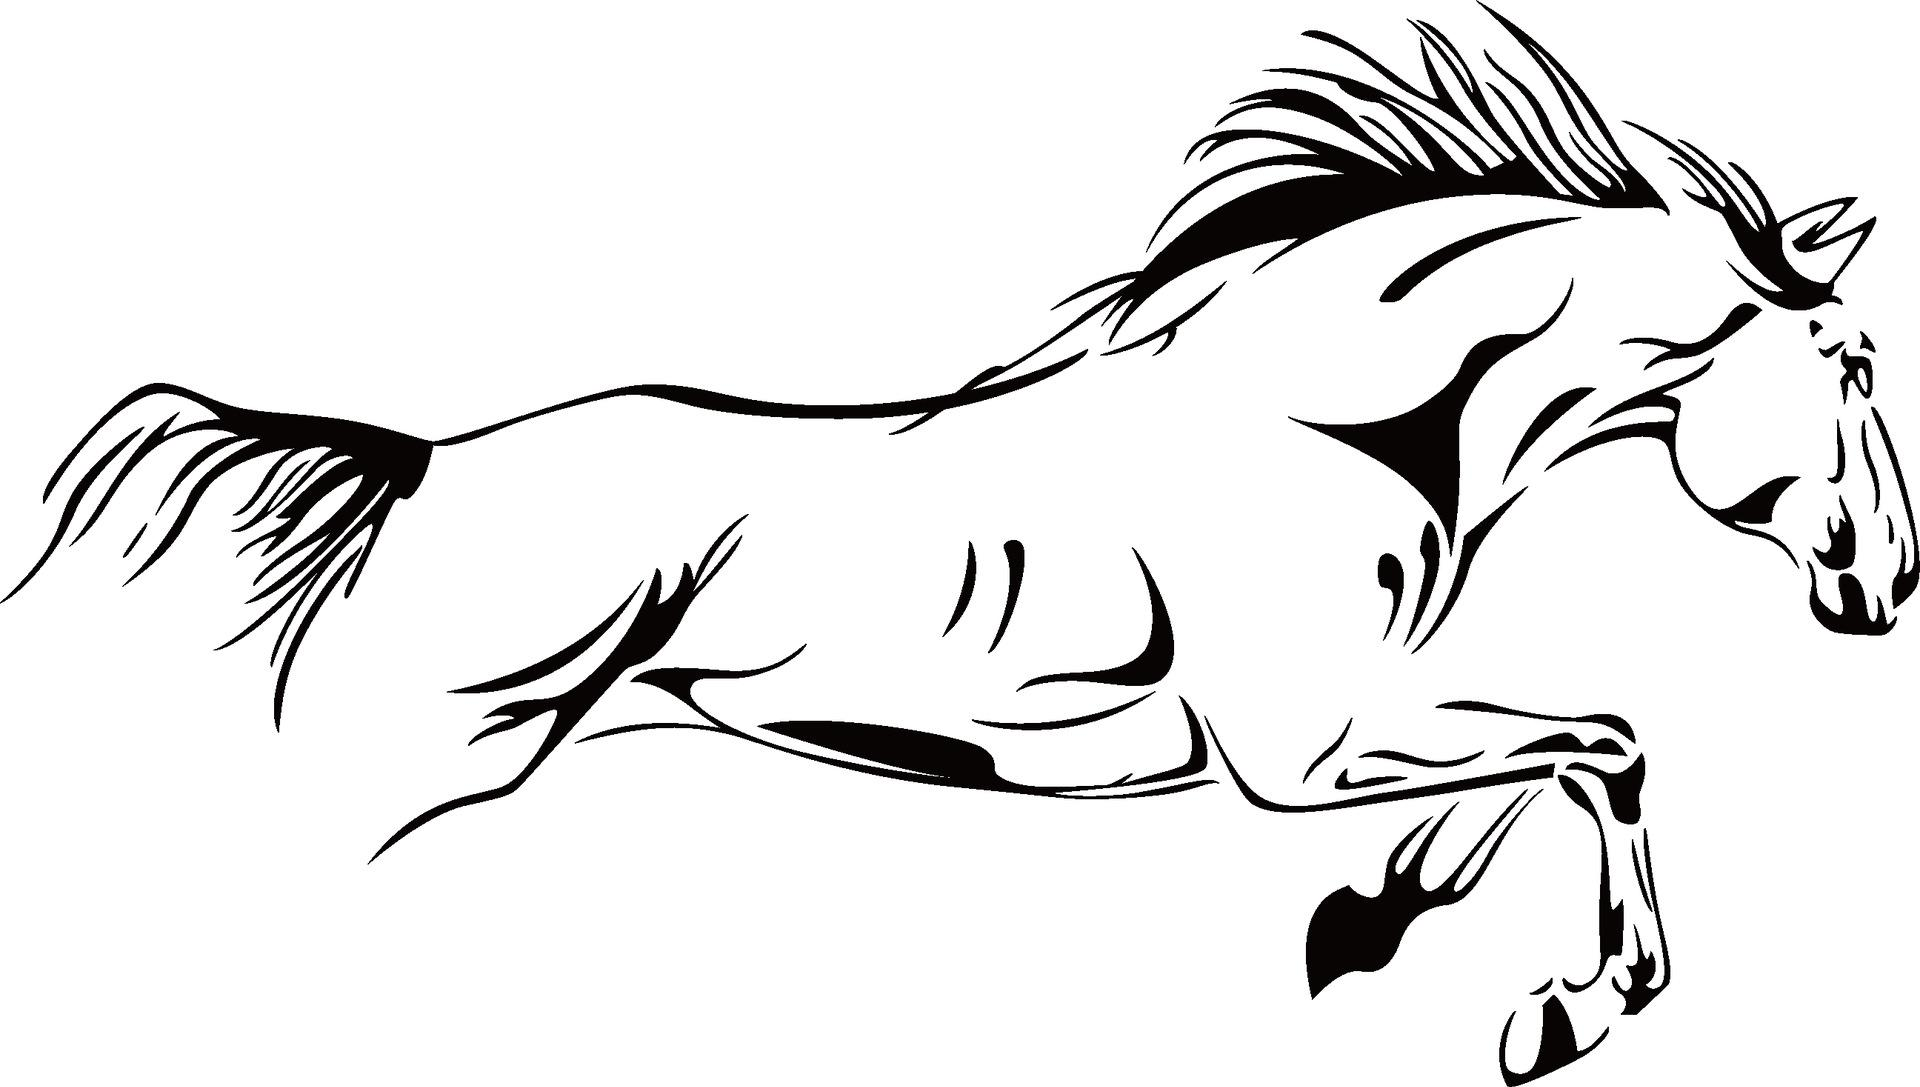 Pentium horse vinyl wall stickers on the wall removable home decor for  bedroom,living room,Tv,sofa setting wall decoration